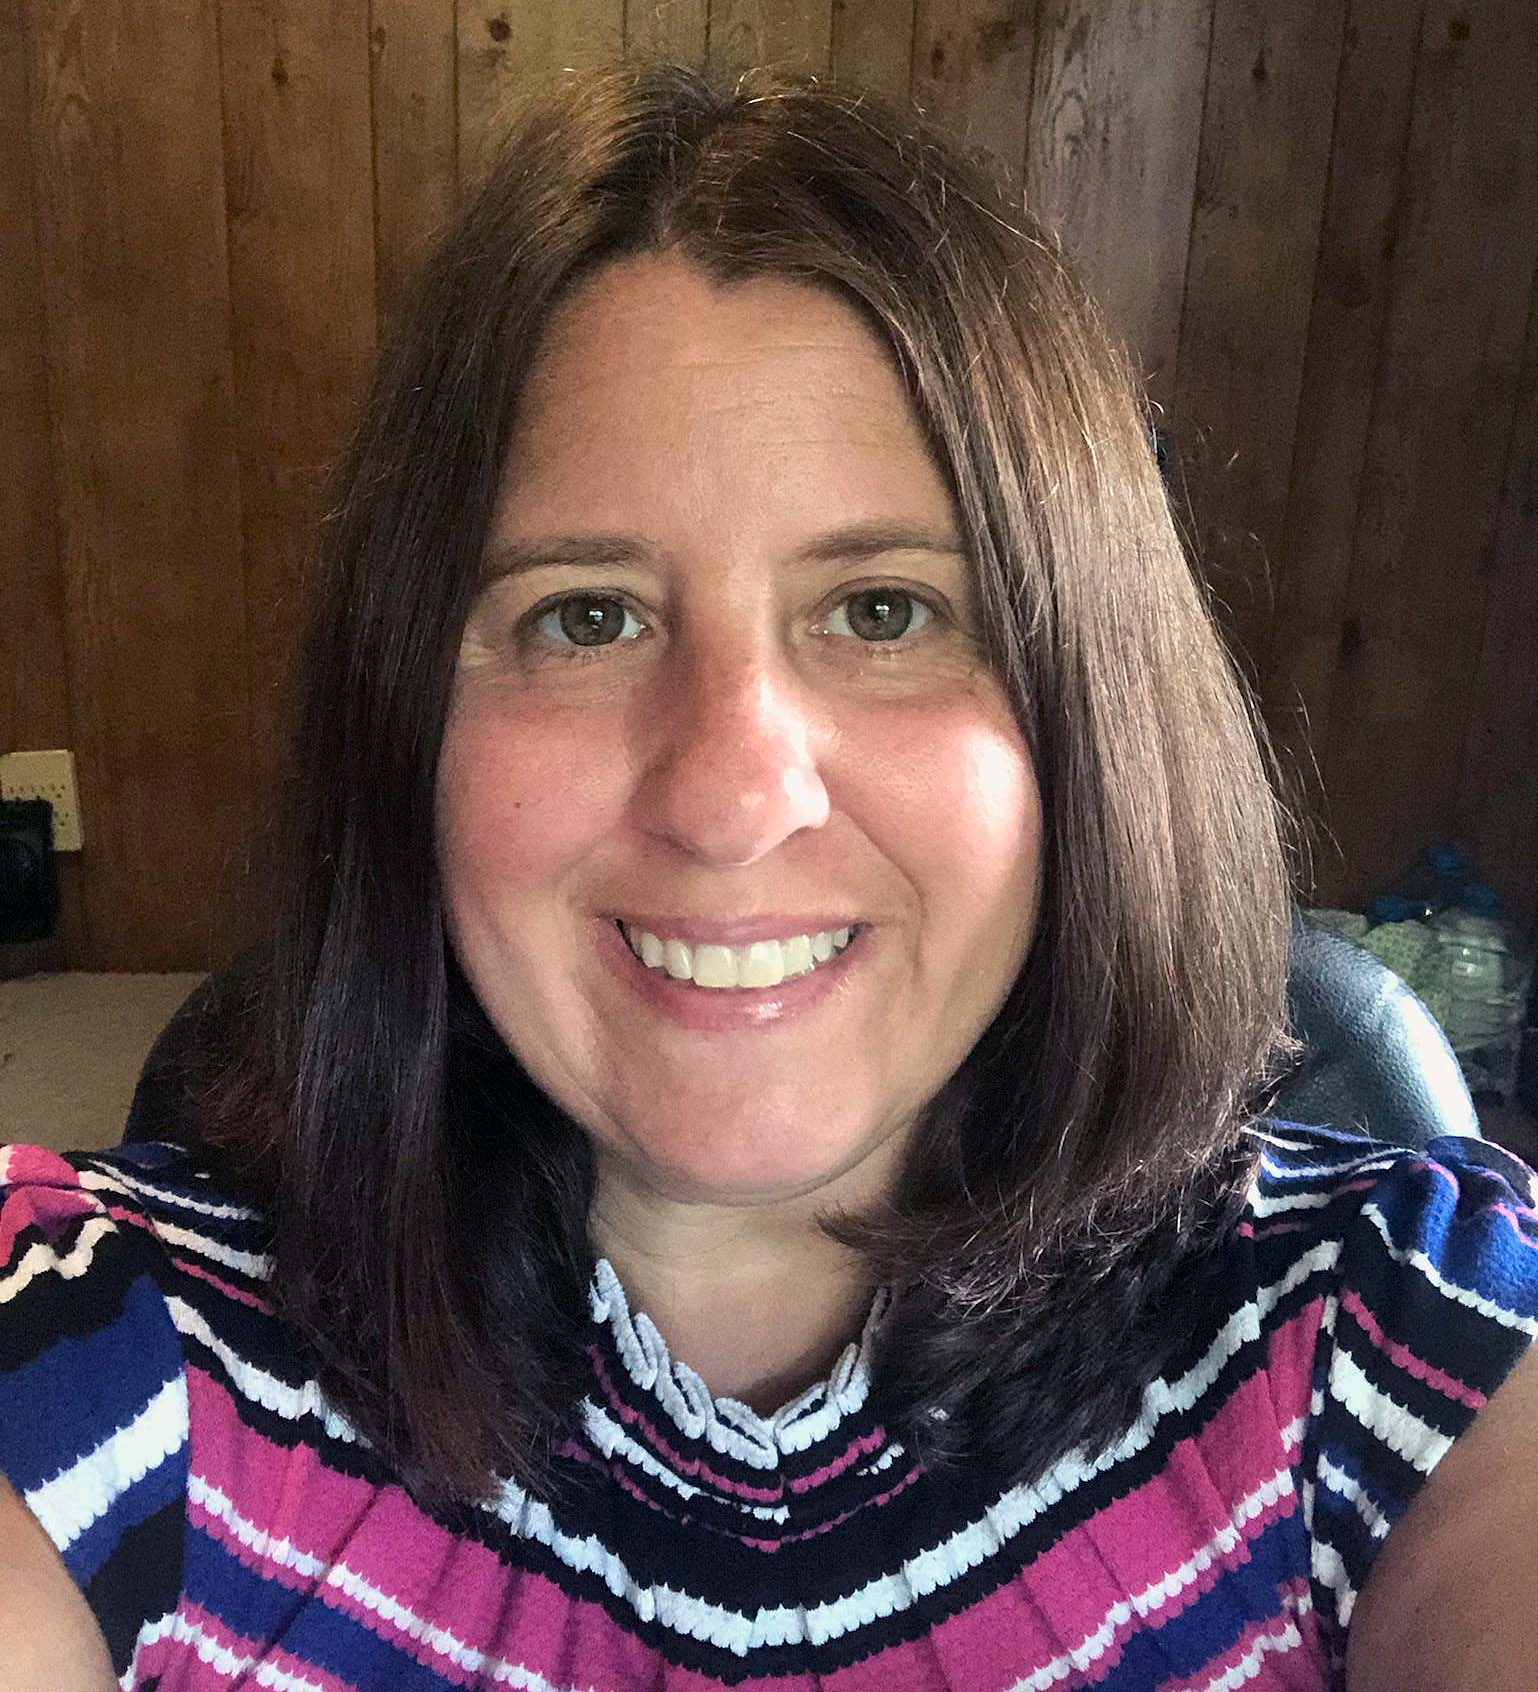 Katie Krupp, 42, poses for a selfie. The reading teacher was laid off when schools shut down during the initial outbreak of the pandemic and has decided to go back to school.